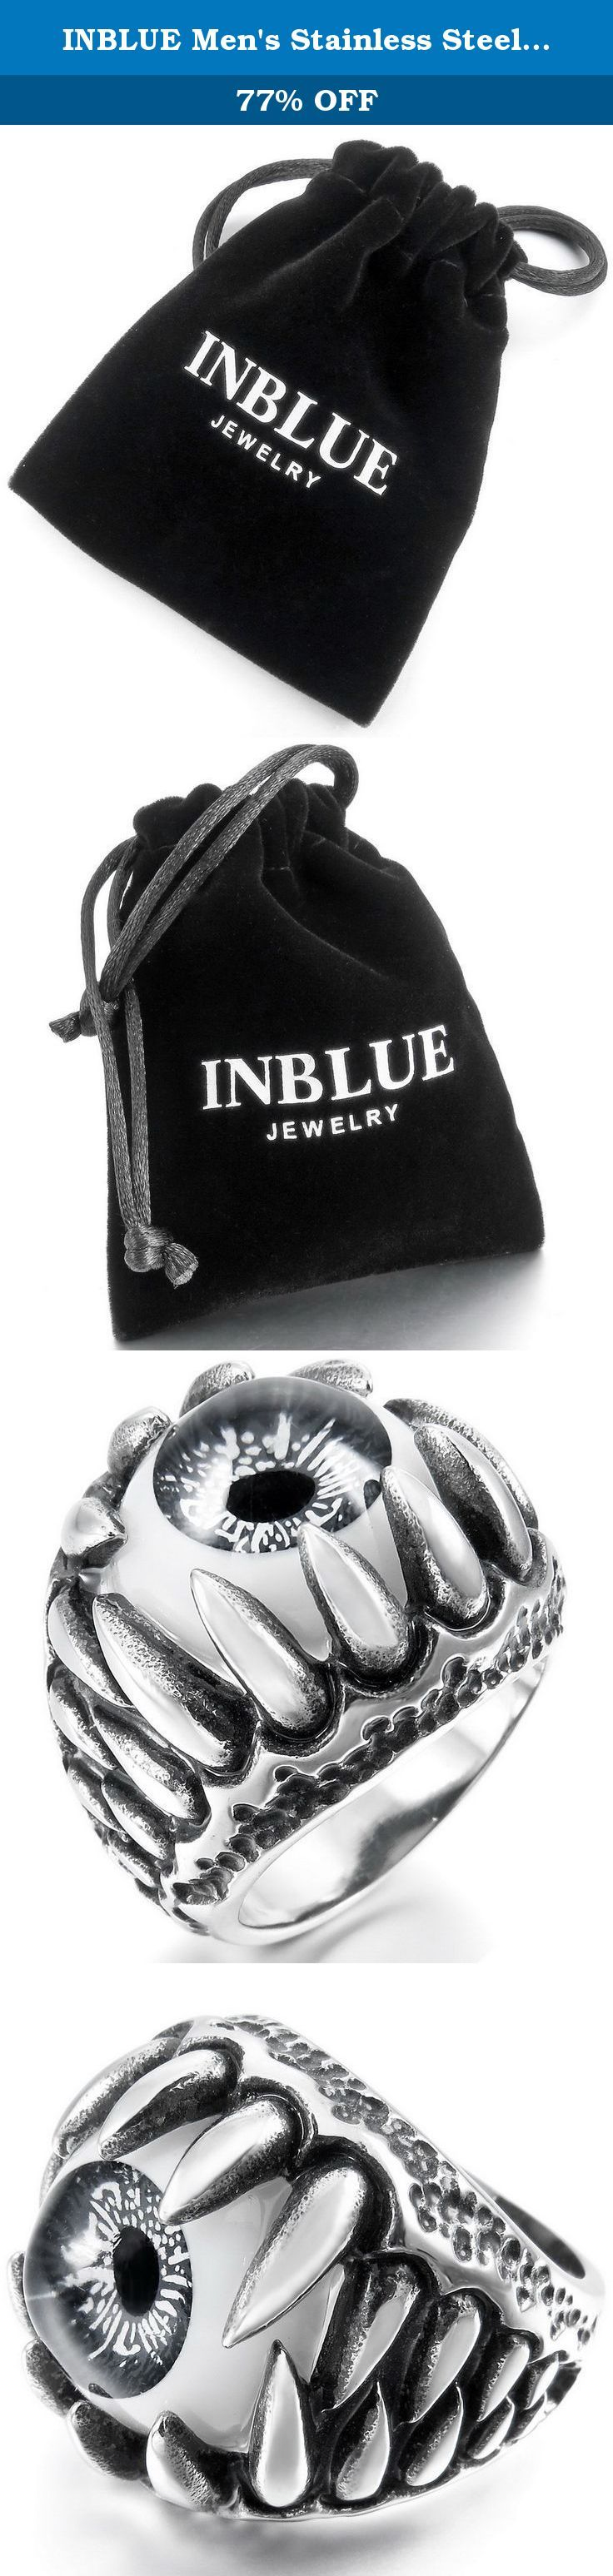 INBLUE Men's Stainless Steel Ring Silver Tone Black Grey White Skull Dragon Claw Evil Devil Eye Size11. INBLUE - High quality Jewelry Discover the INBLUE Collection of jewelry. The selection of high-quality jewelry featured in the INBLUE Collection offers Great values at affordable Price, they mainly made of high quality Stainless Steel, Tungsten, Silver and Leather. Find a special gift for a loved one or a beautiful piece that complements your personal style with jewelry from the INBLUE...